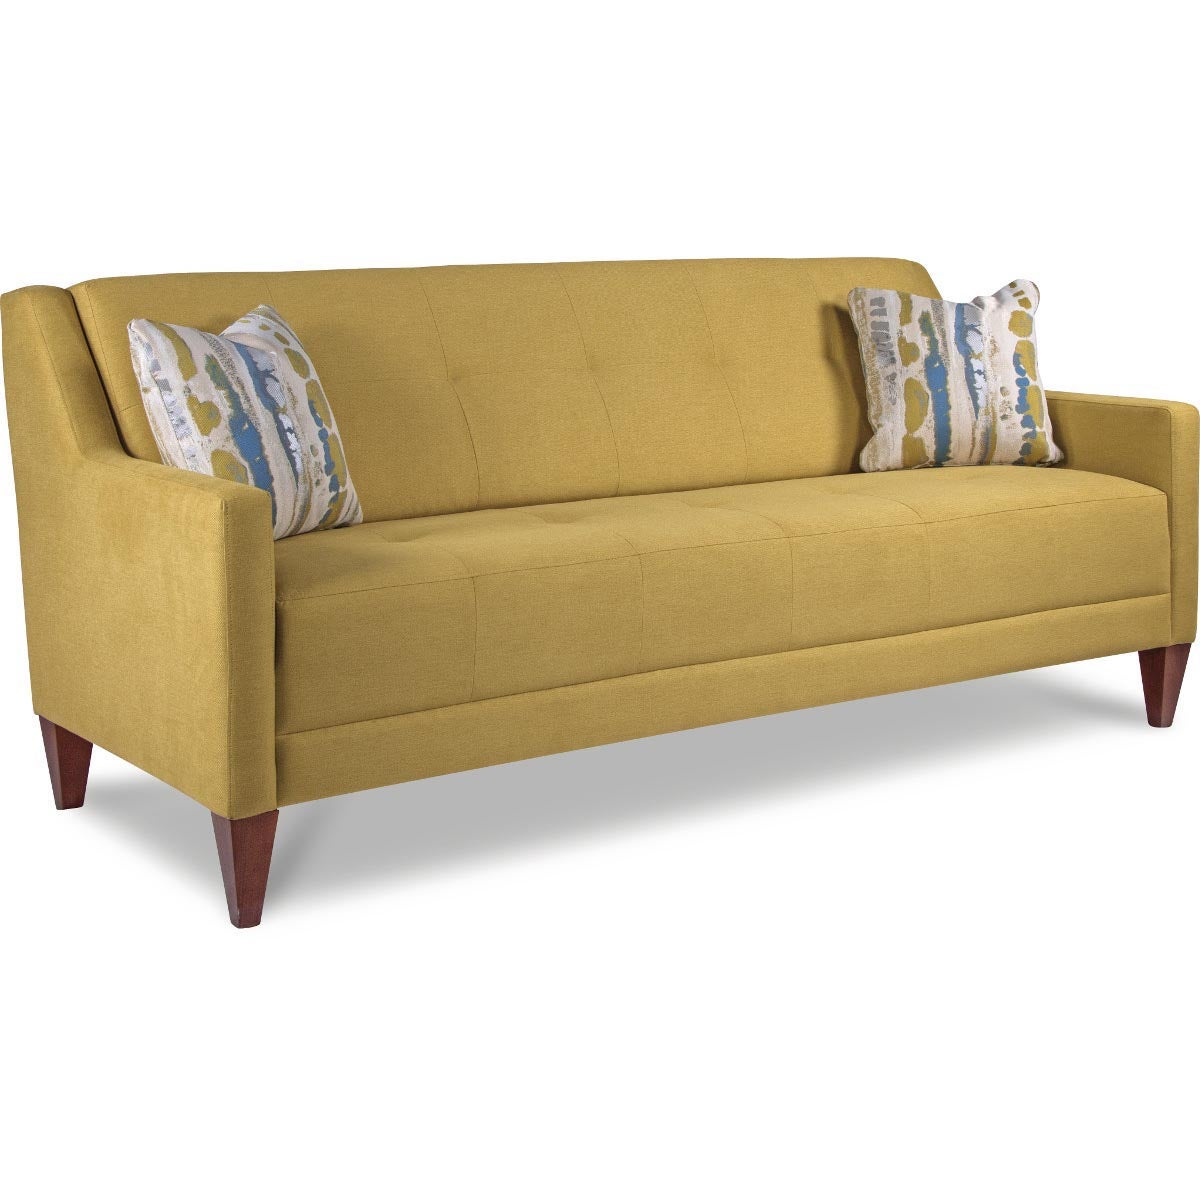 Verve premier sofa for Divan furniture